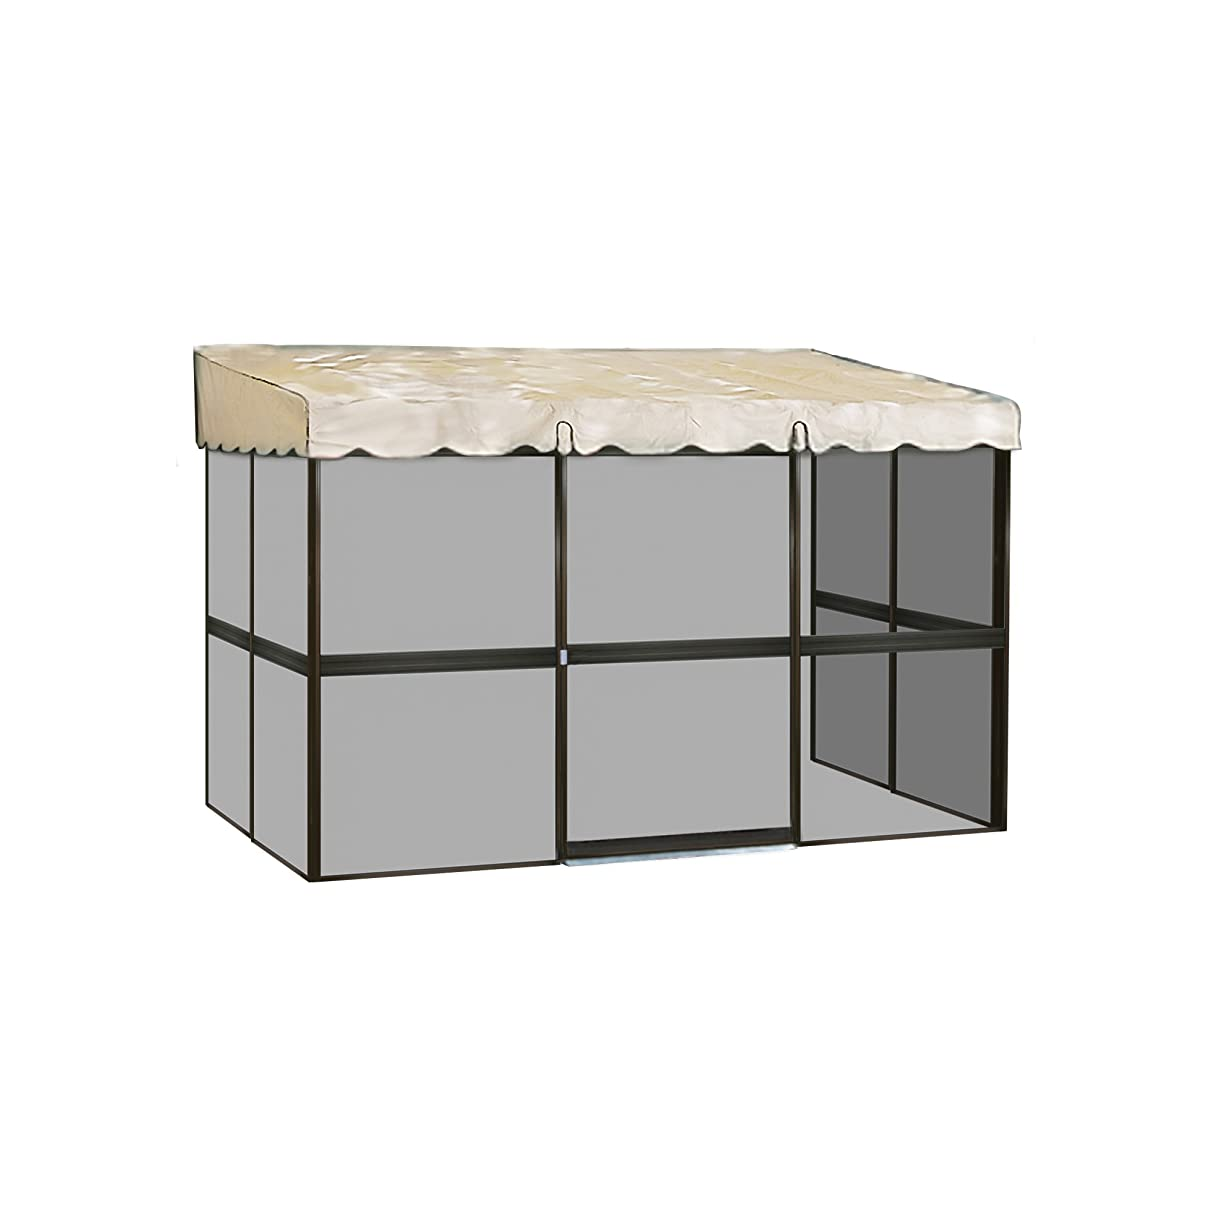 Patio Mate 7-Panel Screen Enclosure 79365, Brown with Almond Roof